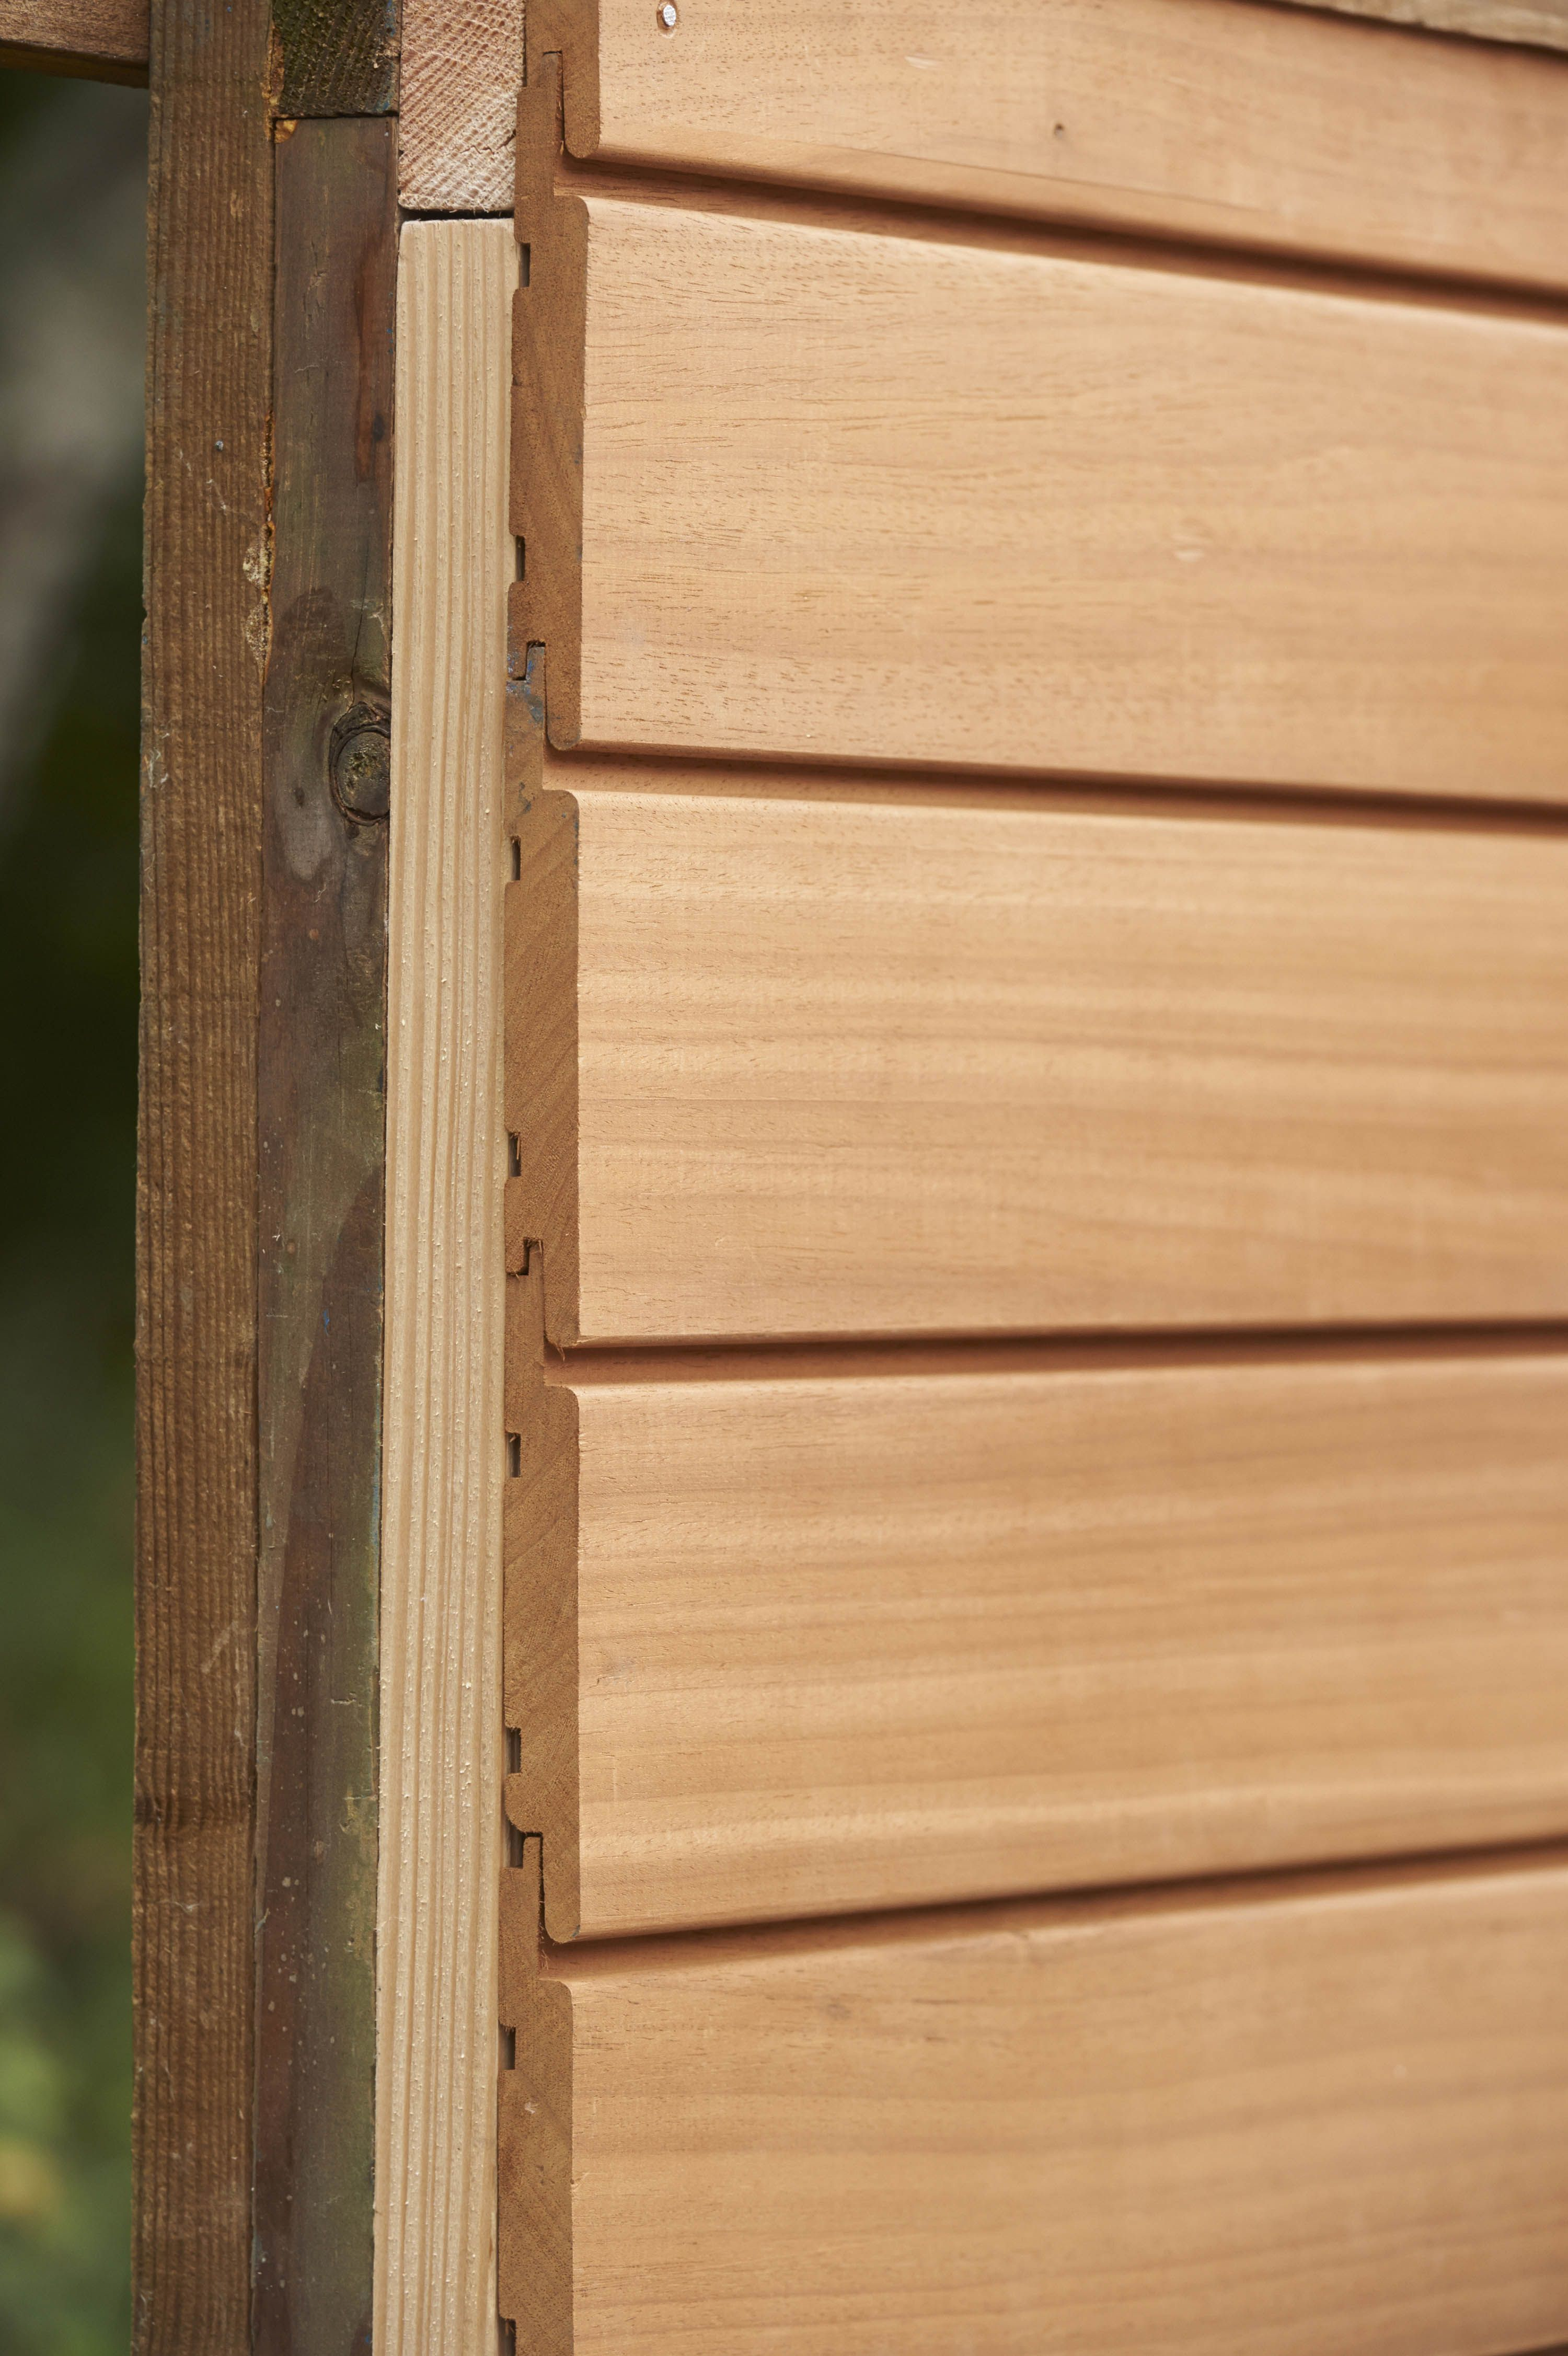 Natural Cladding By Russwood Is A Thermally Modified Hardwood Timber Cladding For Exteriors